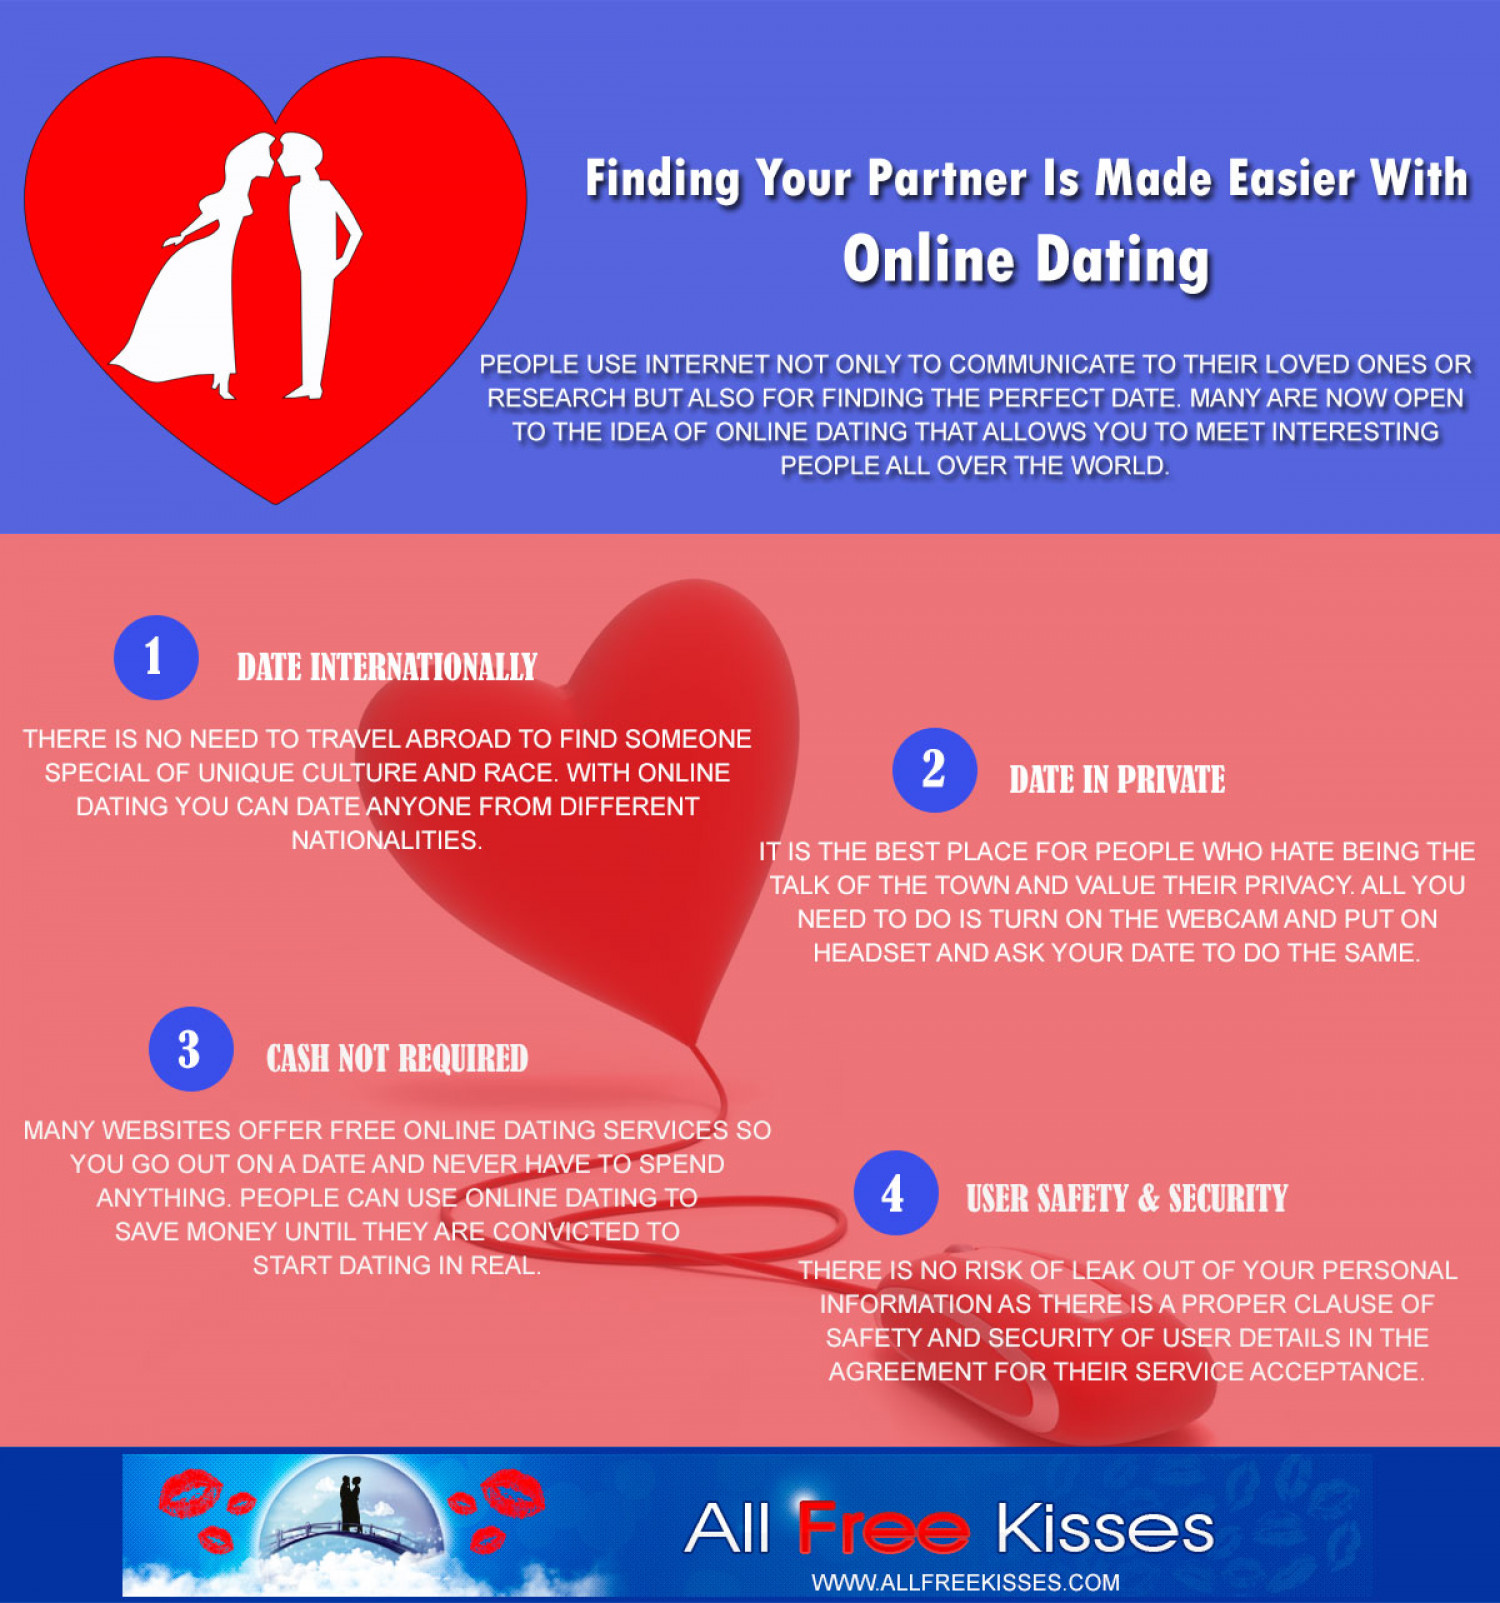 dating partner search Search for singles from our personal ads quick search our quick search utility allows you to find singles fast, without getting too specific.